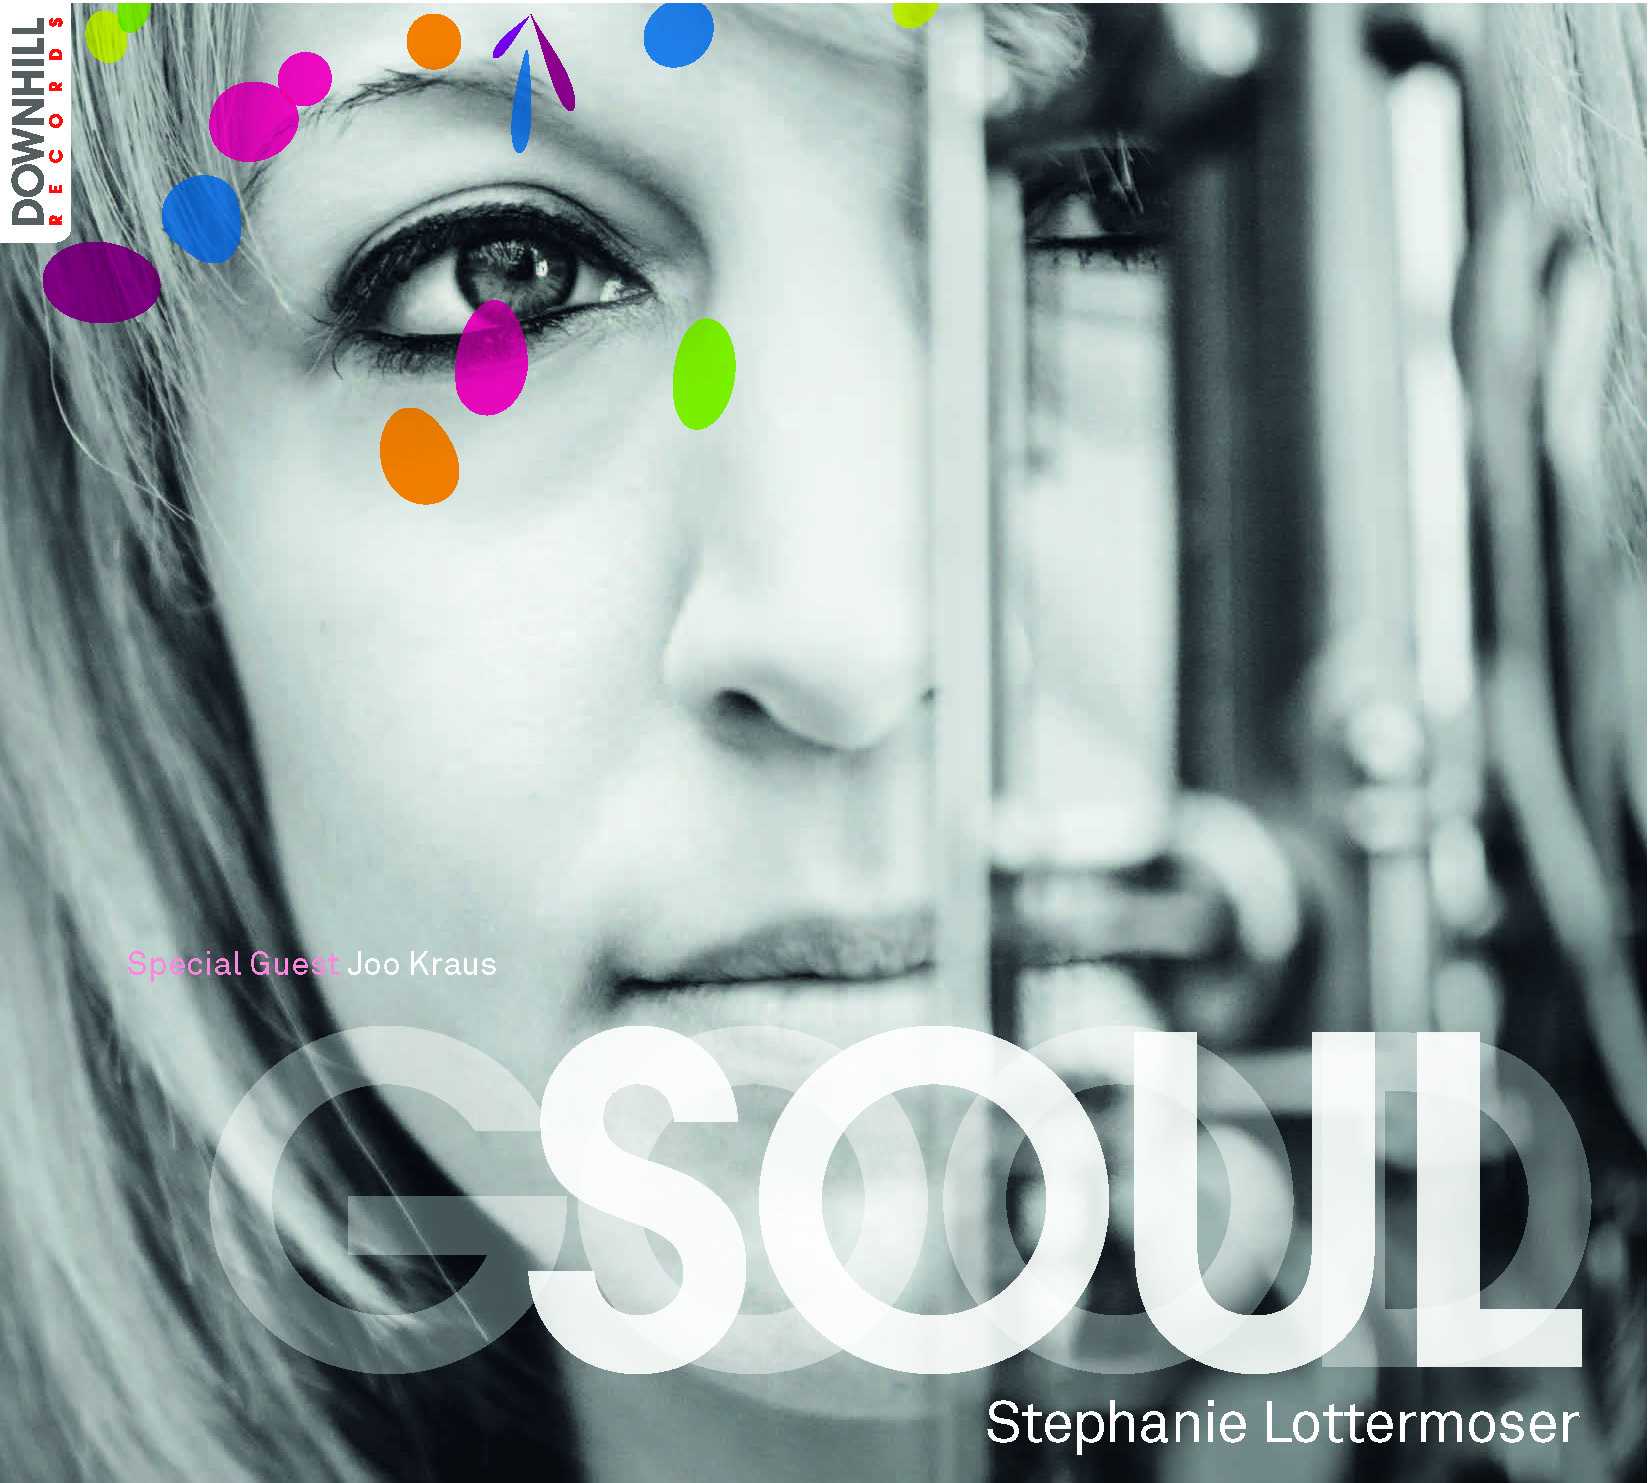 GOOD SOUL (Downhill Records 2013) - 01 Step Ahead - 02 Overjoyed - 03 Prince of Scotland (feat. Joo Kraus) - 04 Chet - 05 Between Three And Five - 06 Good Soul - 07 Natural Woman (feat. Joo Kraus) - 08 Here! - 09 If You Go AwayStephanie Lottermoser (ts, fl, voc, comp/arr), Sebastian Gampl (keys), Sebastian Gieck (b), Magnus Dauner (dr)recorded at Downhill Studios MunichZum Album: Amazon, Spotify, ITunes